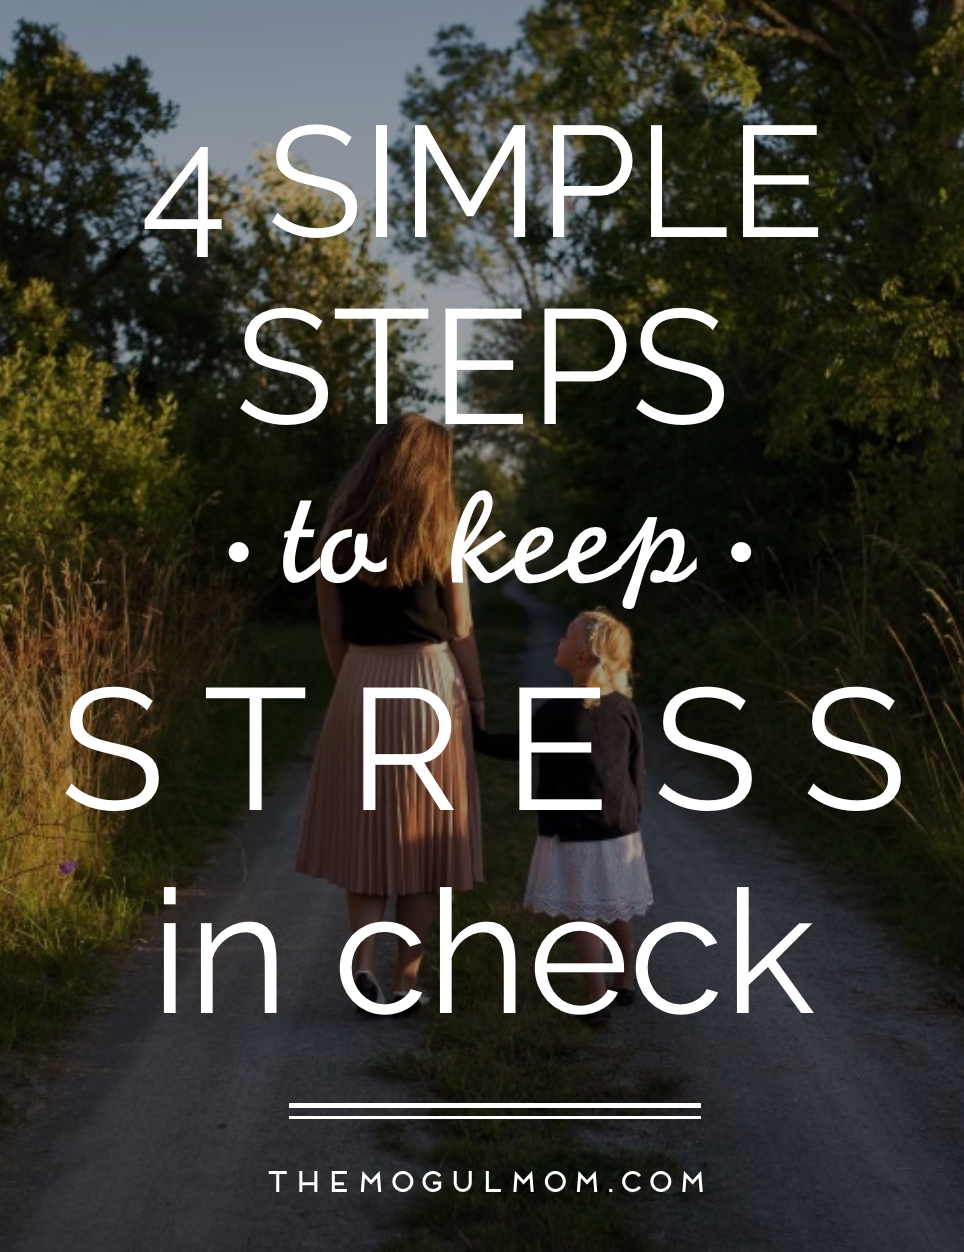 4 Simple Steps to Keep Stress in Check